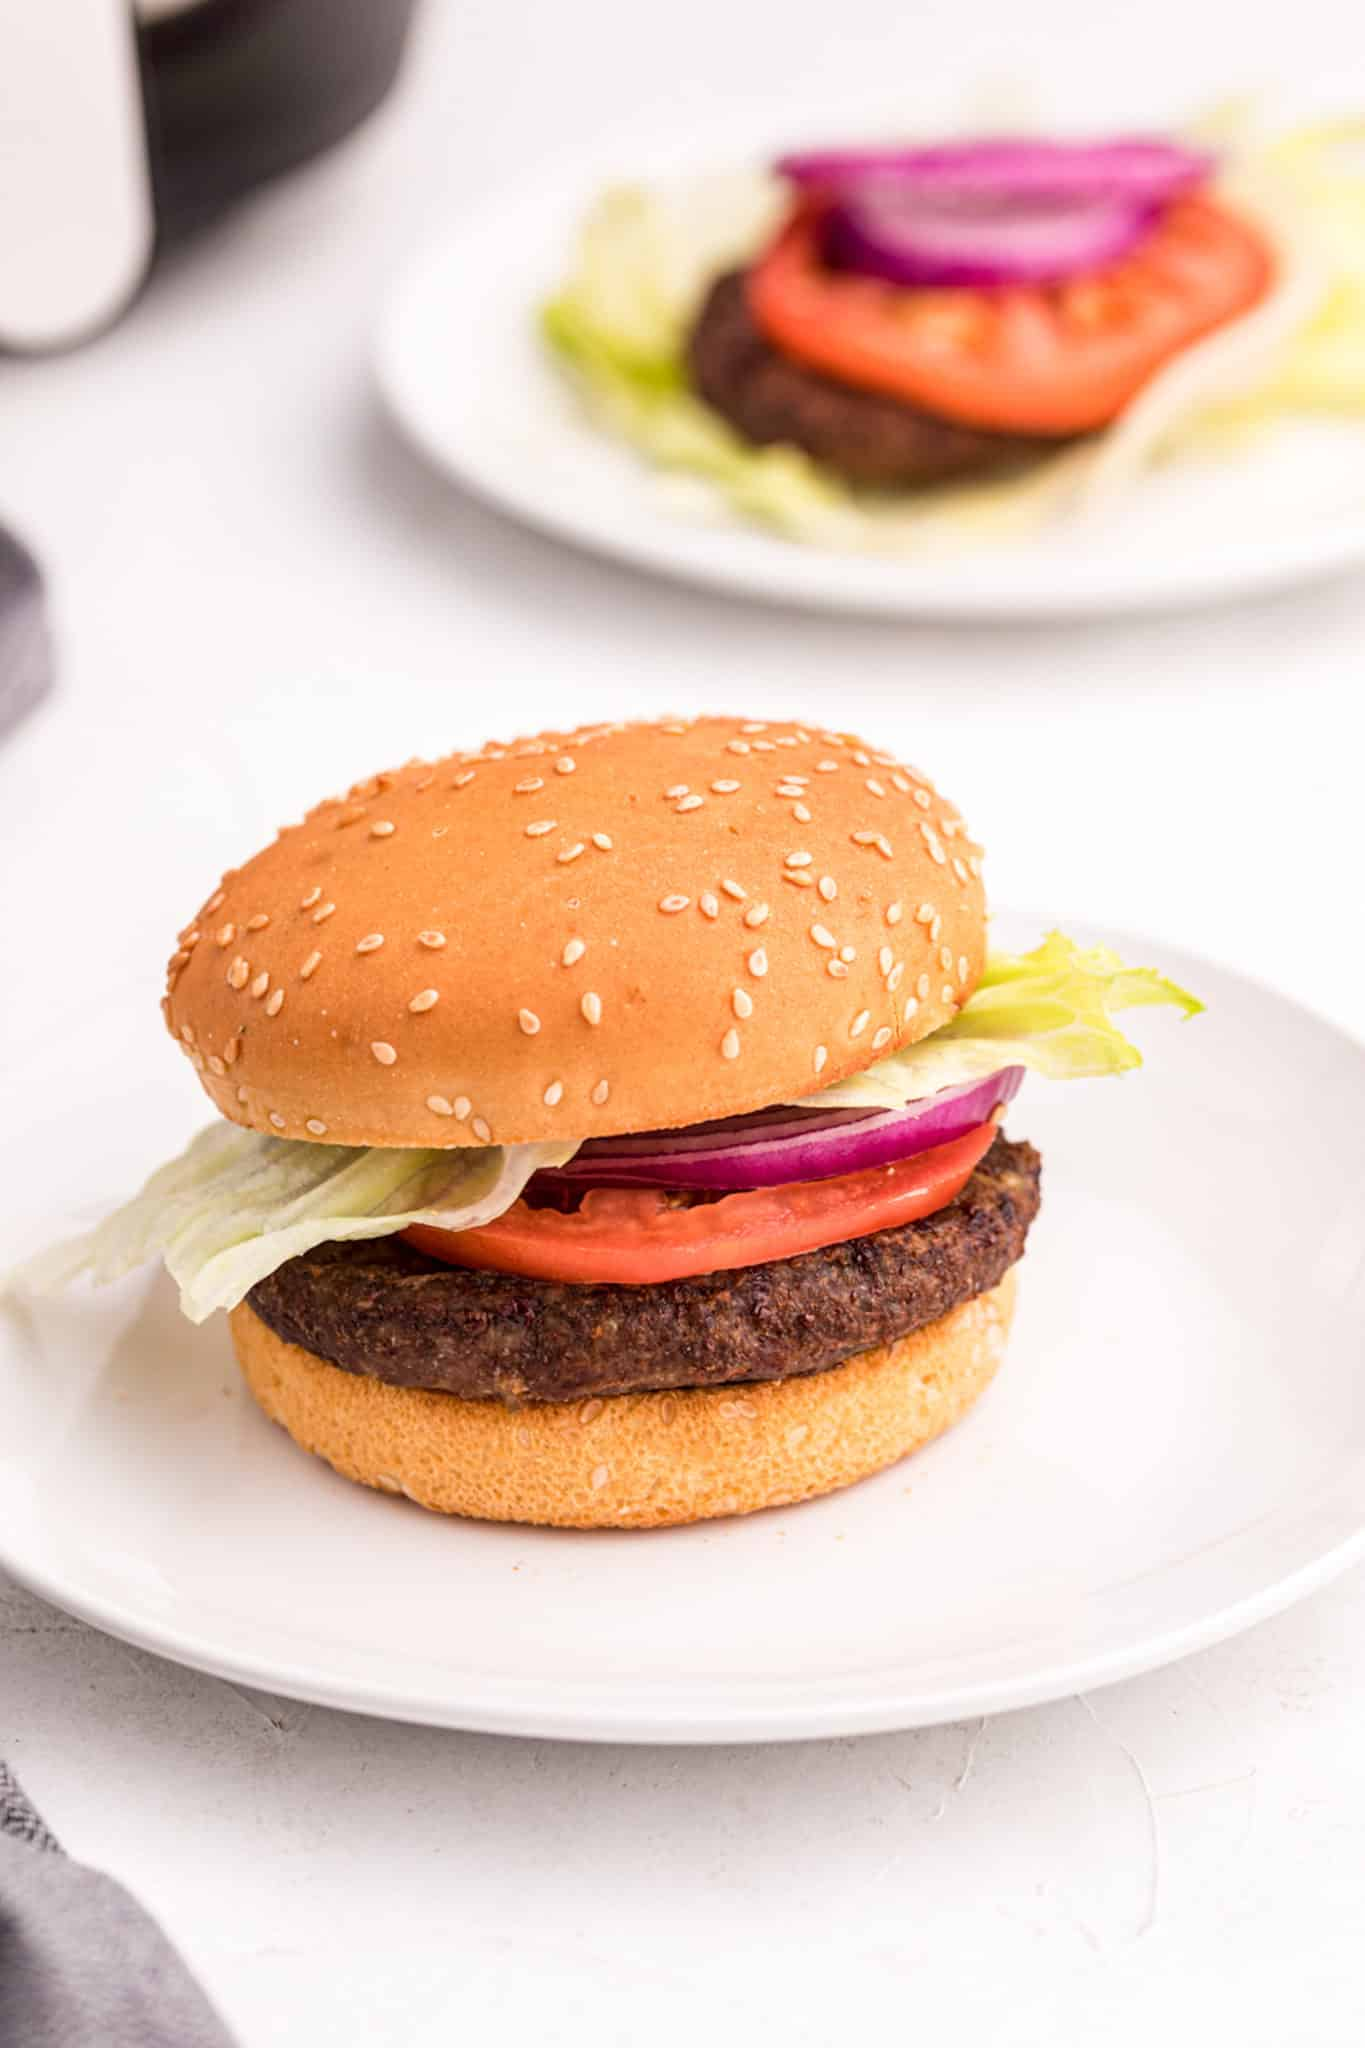 A hamburger with onion and tomato